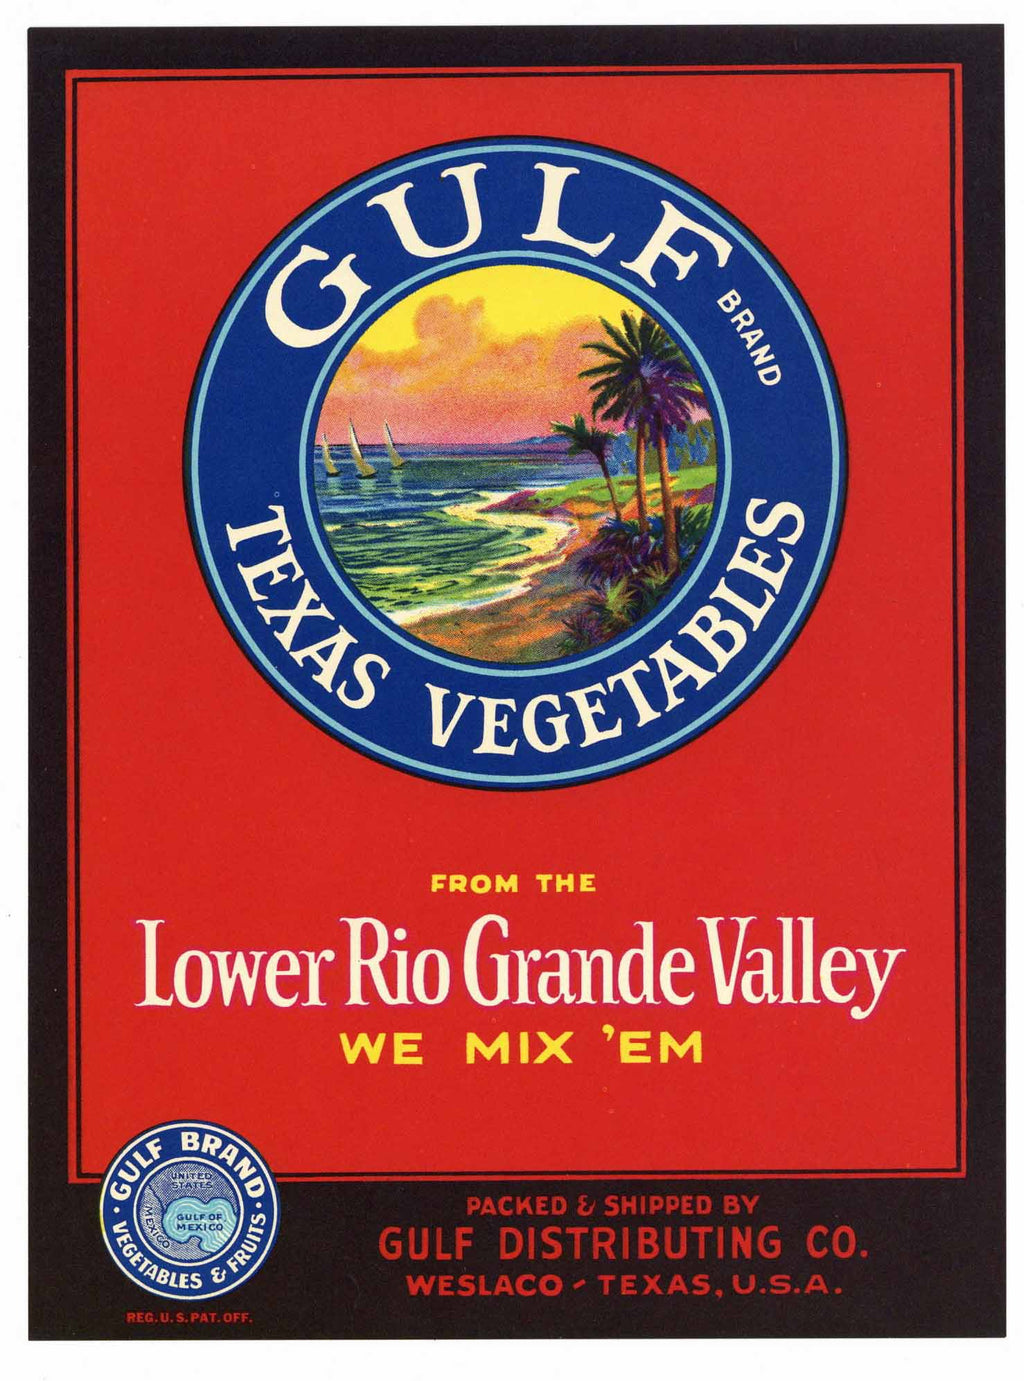 Gulf Brand Vintage Texas Vegetable Crate Label